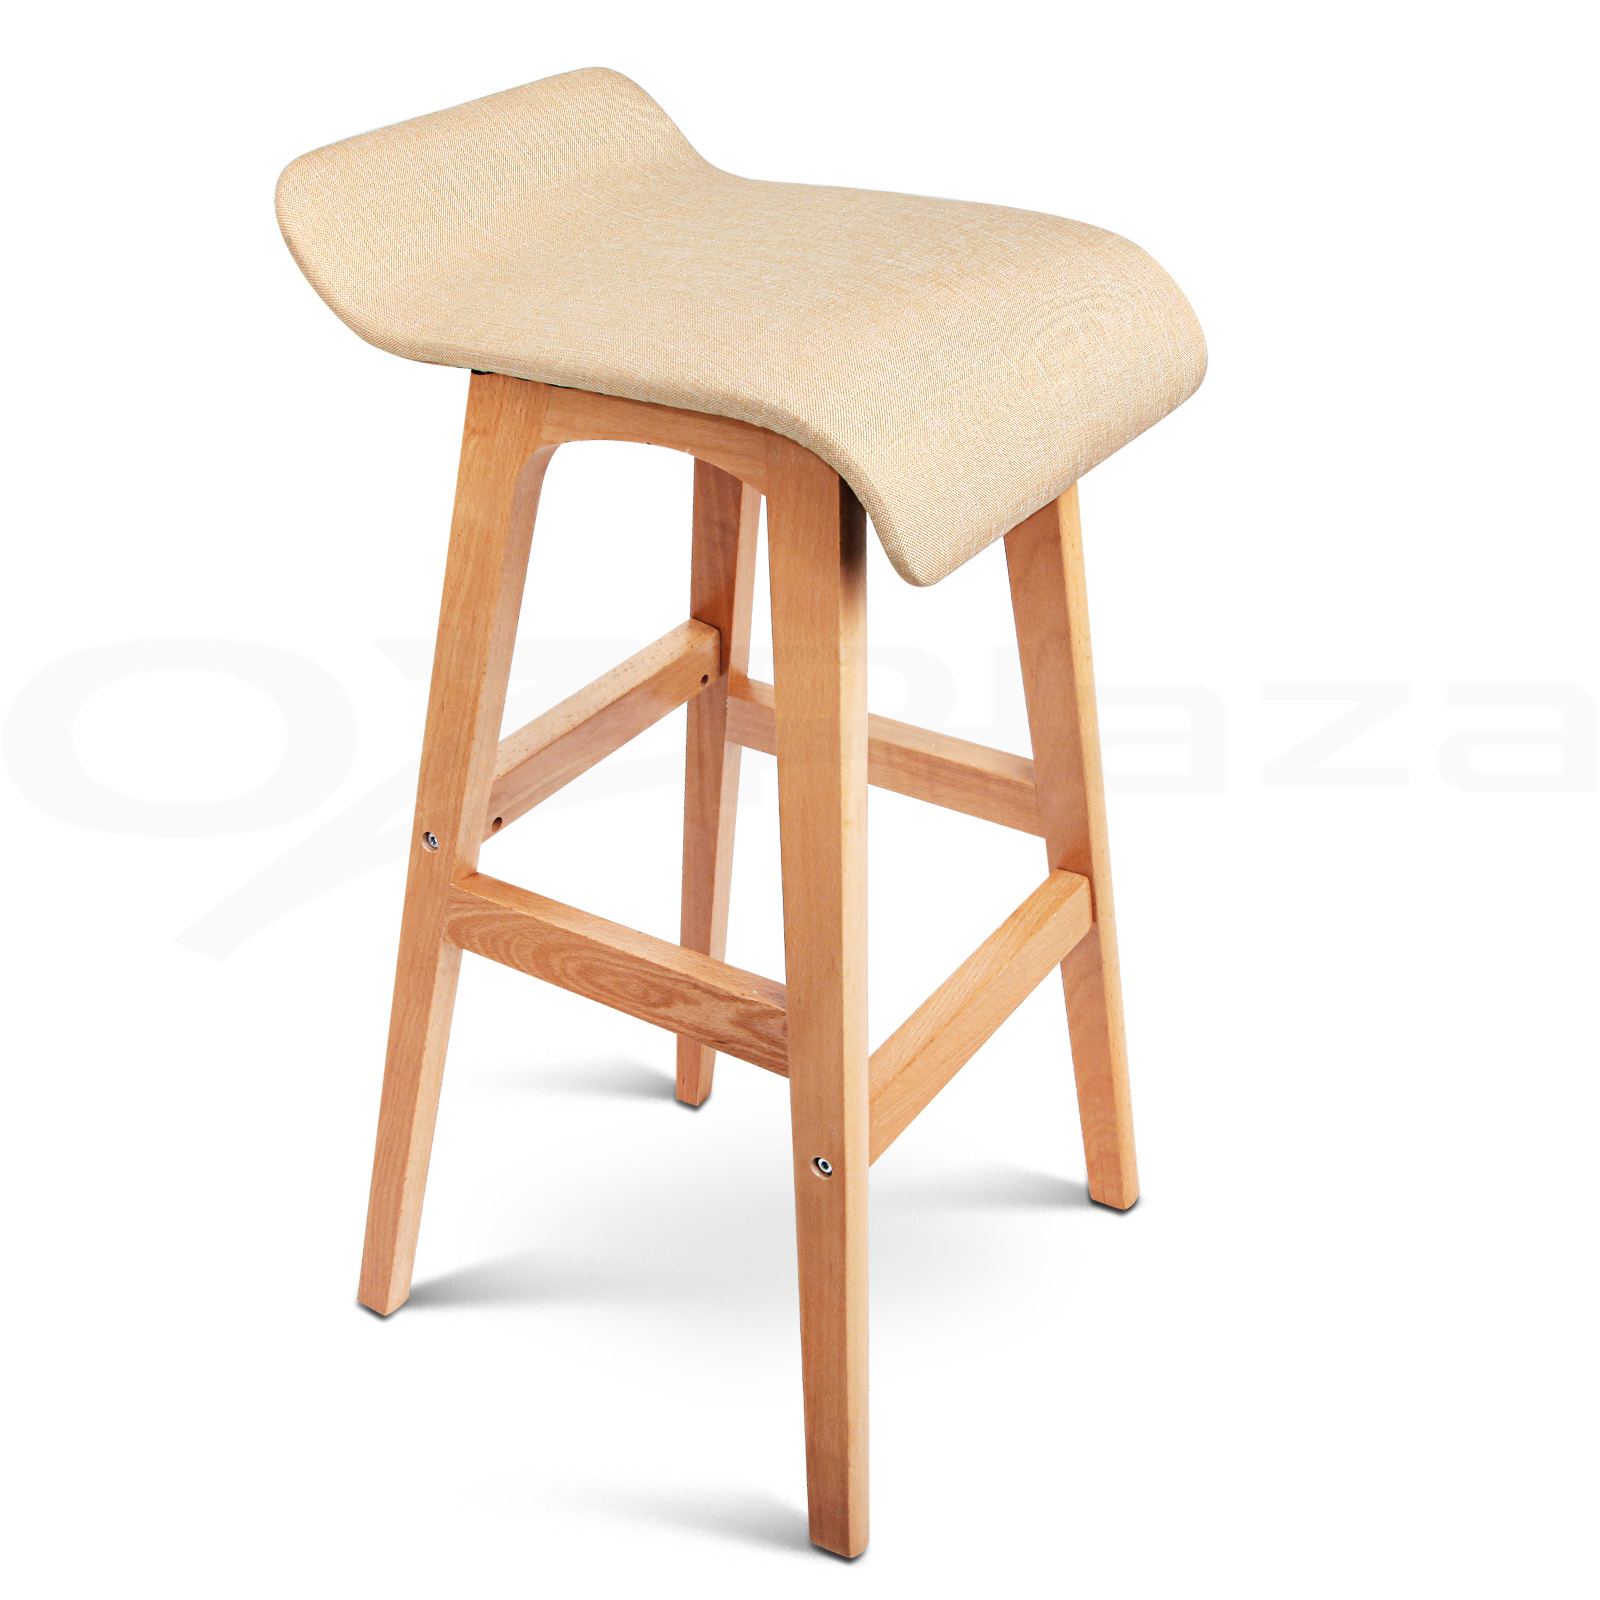 4x Wooden Bar Stools Kitchen Barstool Fabric Foam Seat Dining Chair Beige 156